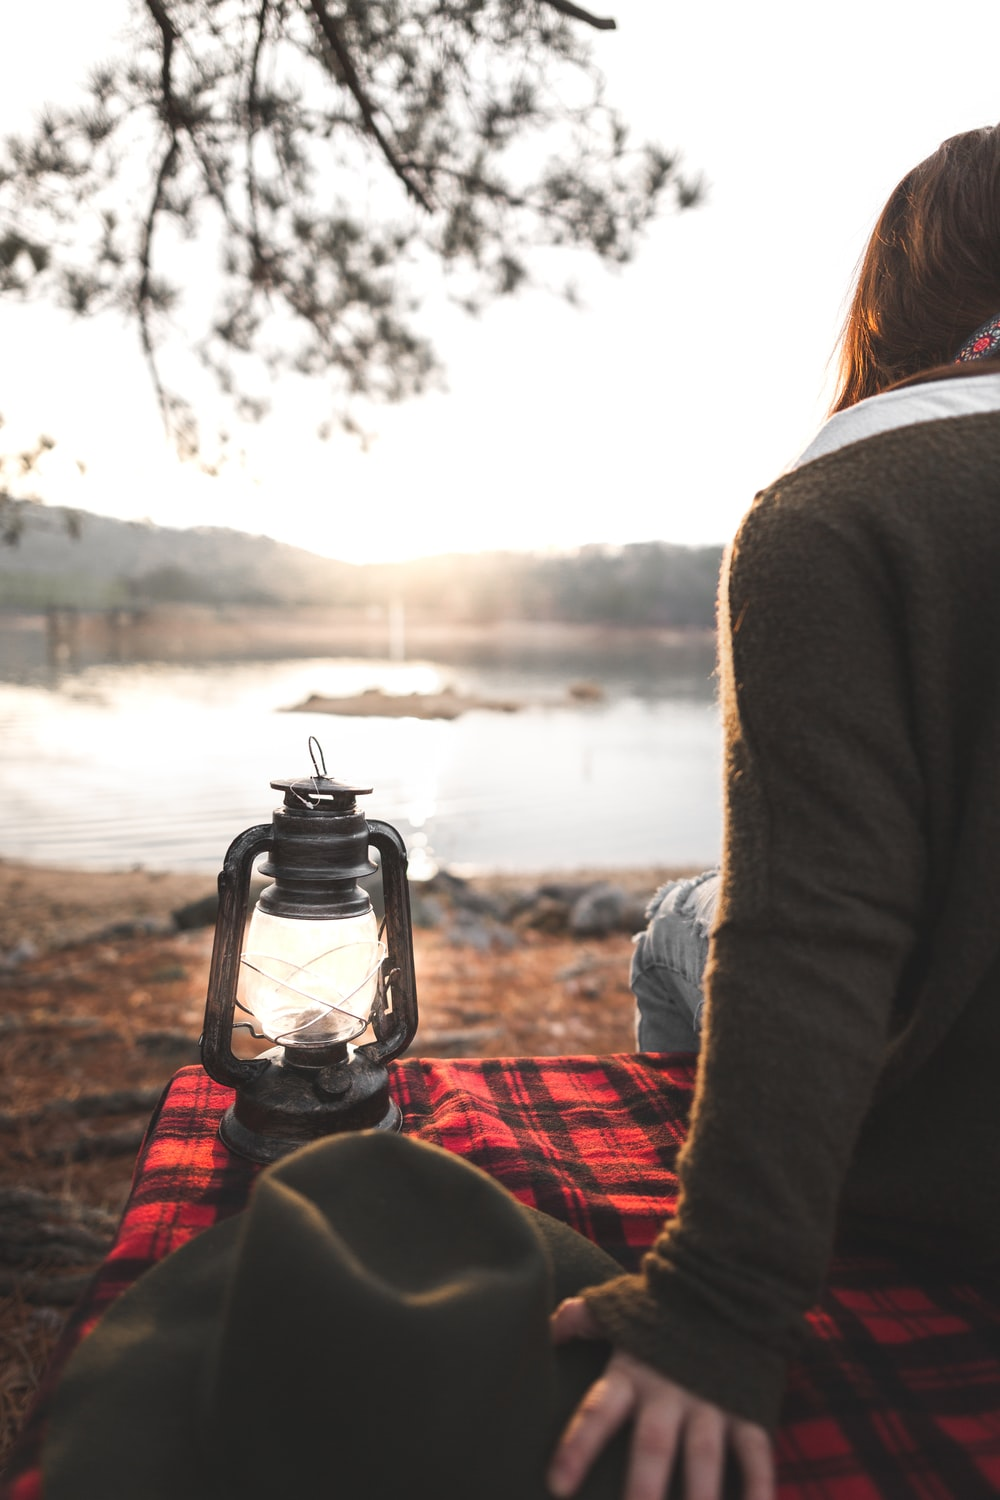 woman sitting on picnic mat with lantern by the lake